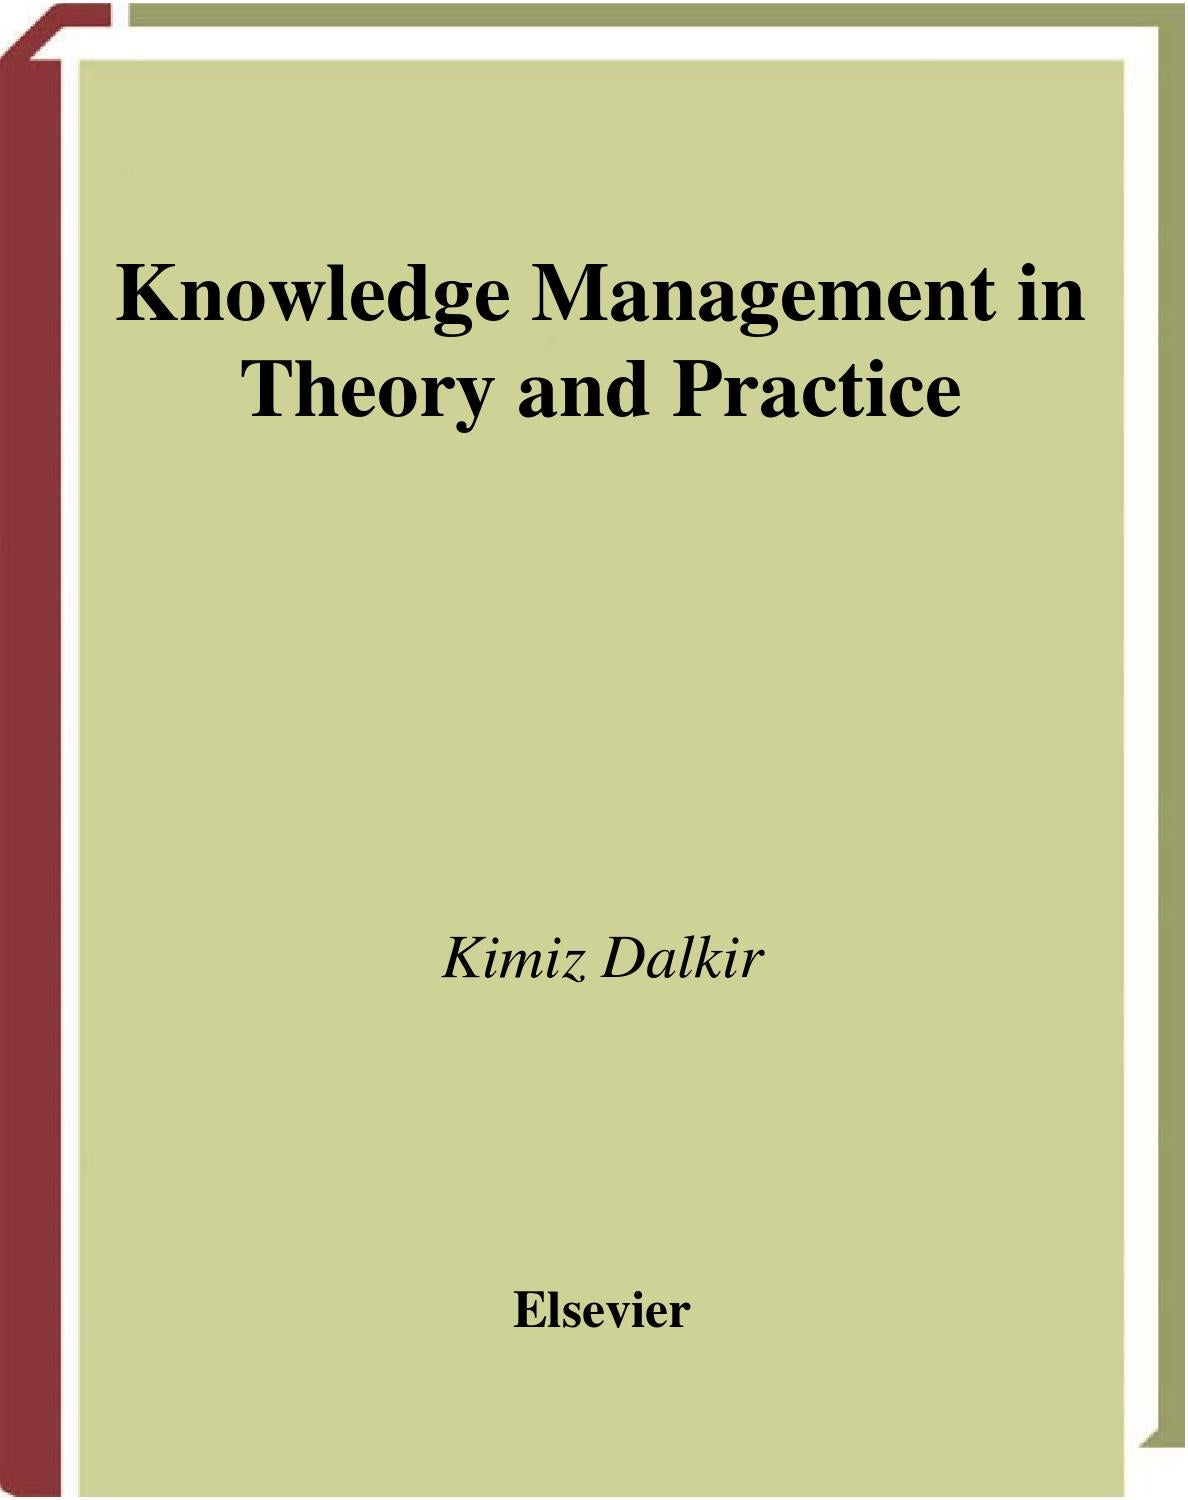 thesis on knowledge management phd Thesis knowledge management pdf - george mason university.